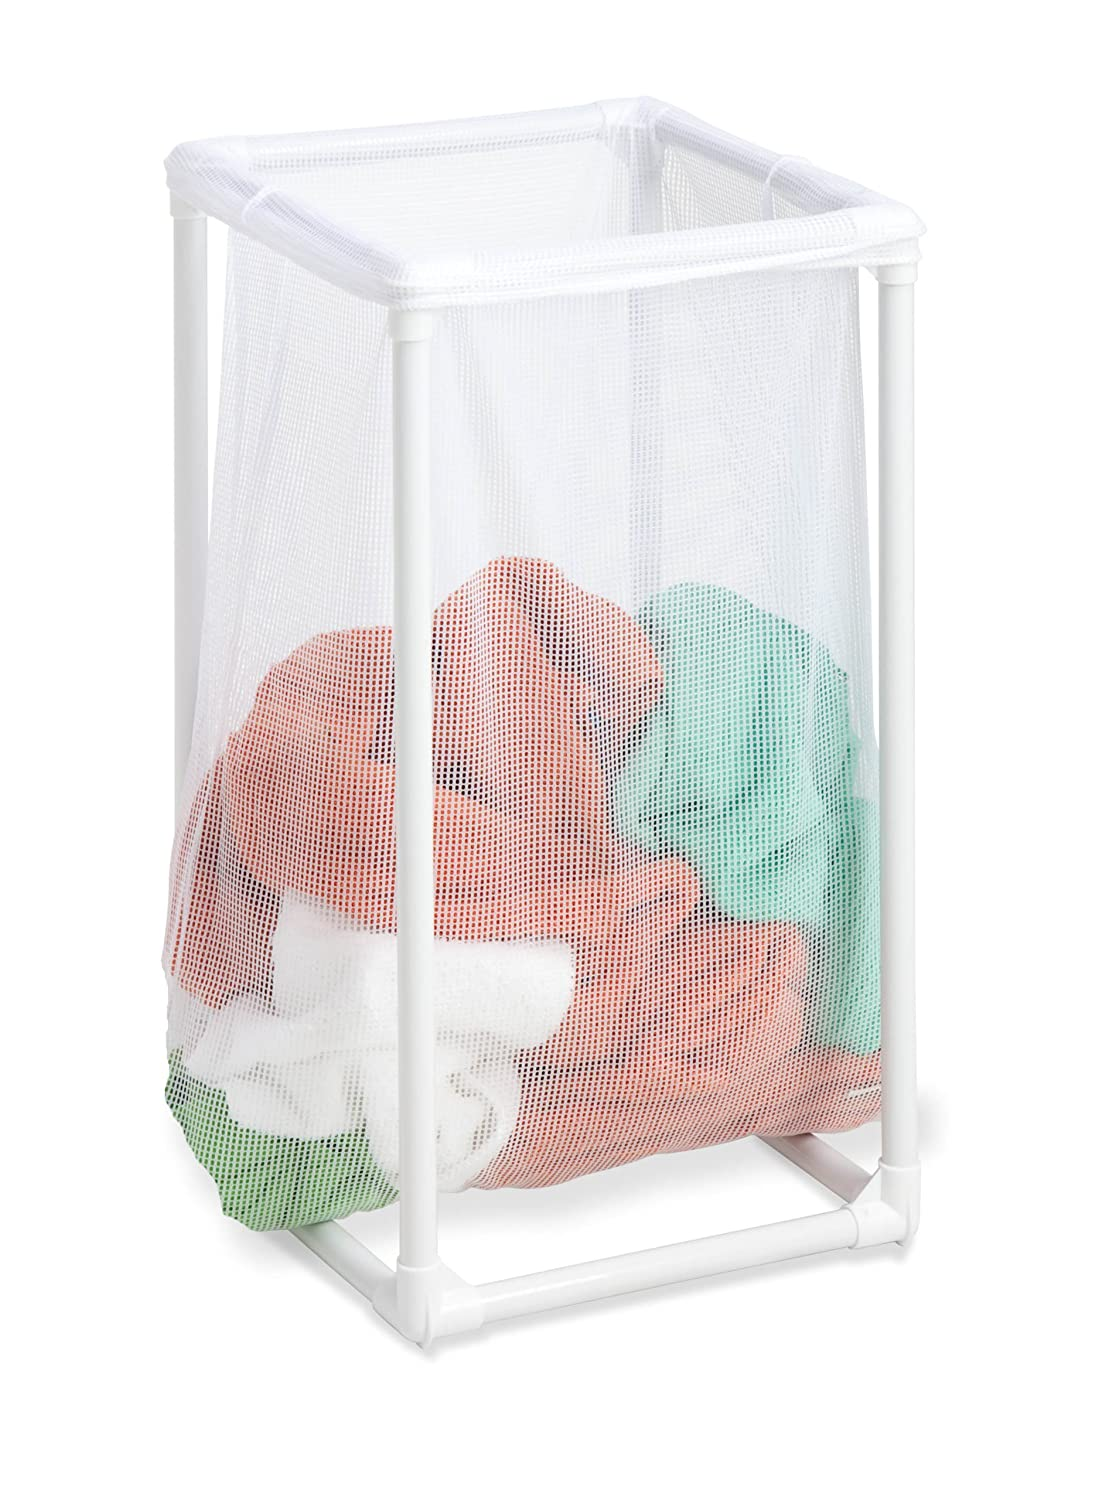 Amazon.com: Honey-Can-Do HMP-01627 1-Bag Mesh Laundry Hamper: Home ...